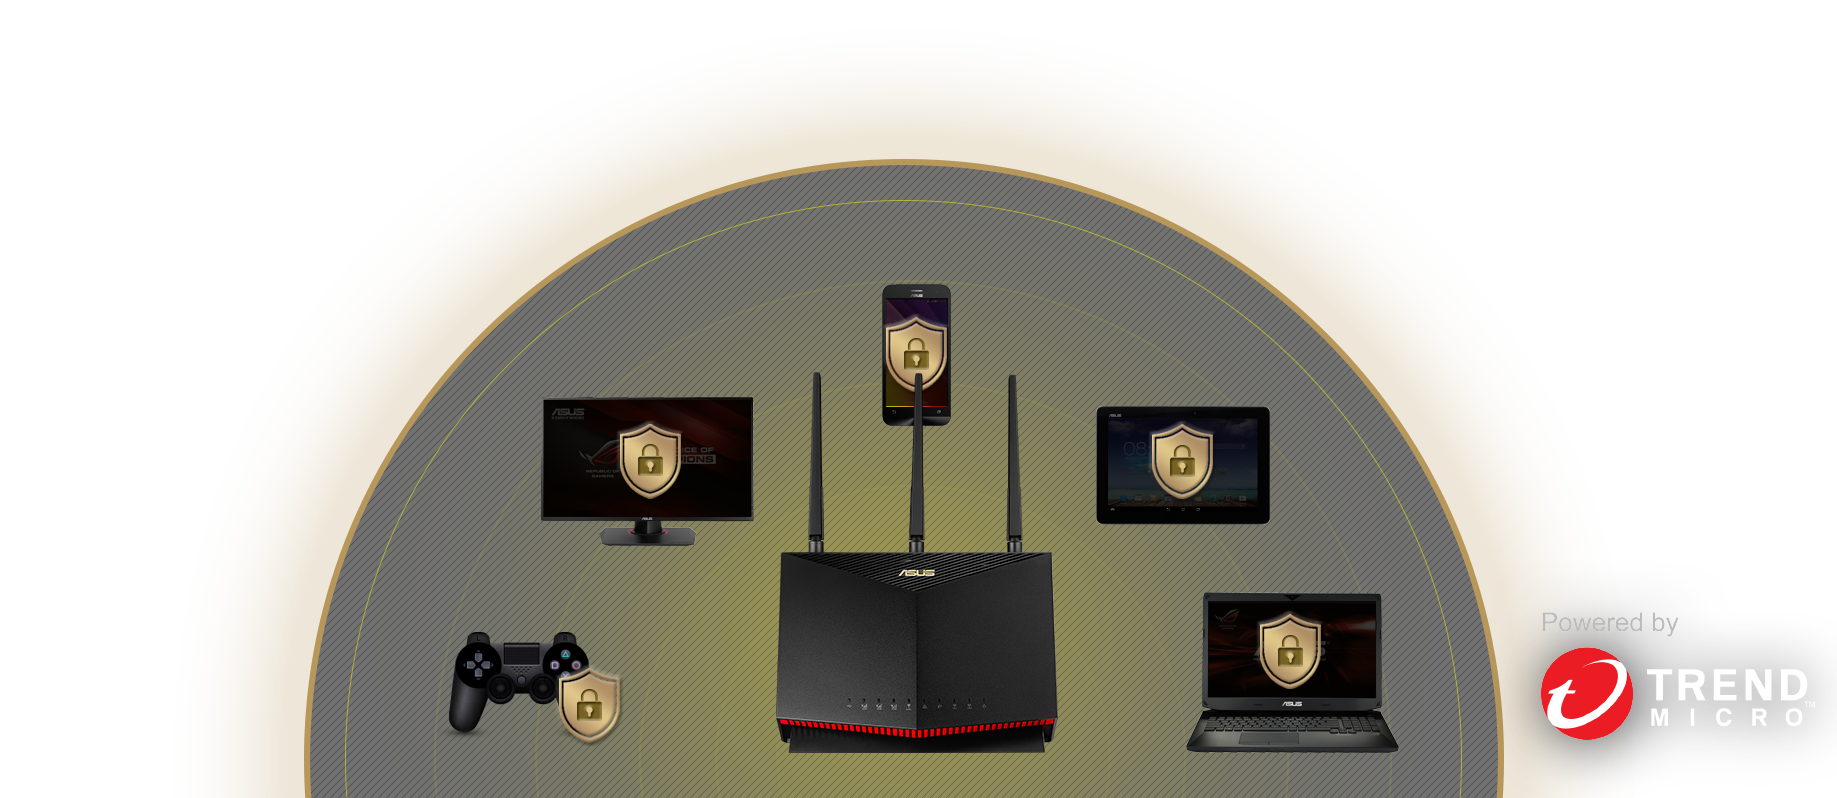 ASUS 4G-AC86U router features AiProtection providing internet security for all connected devices